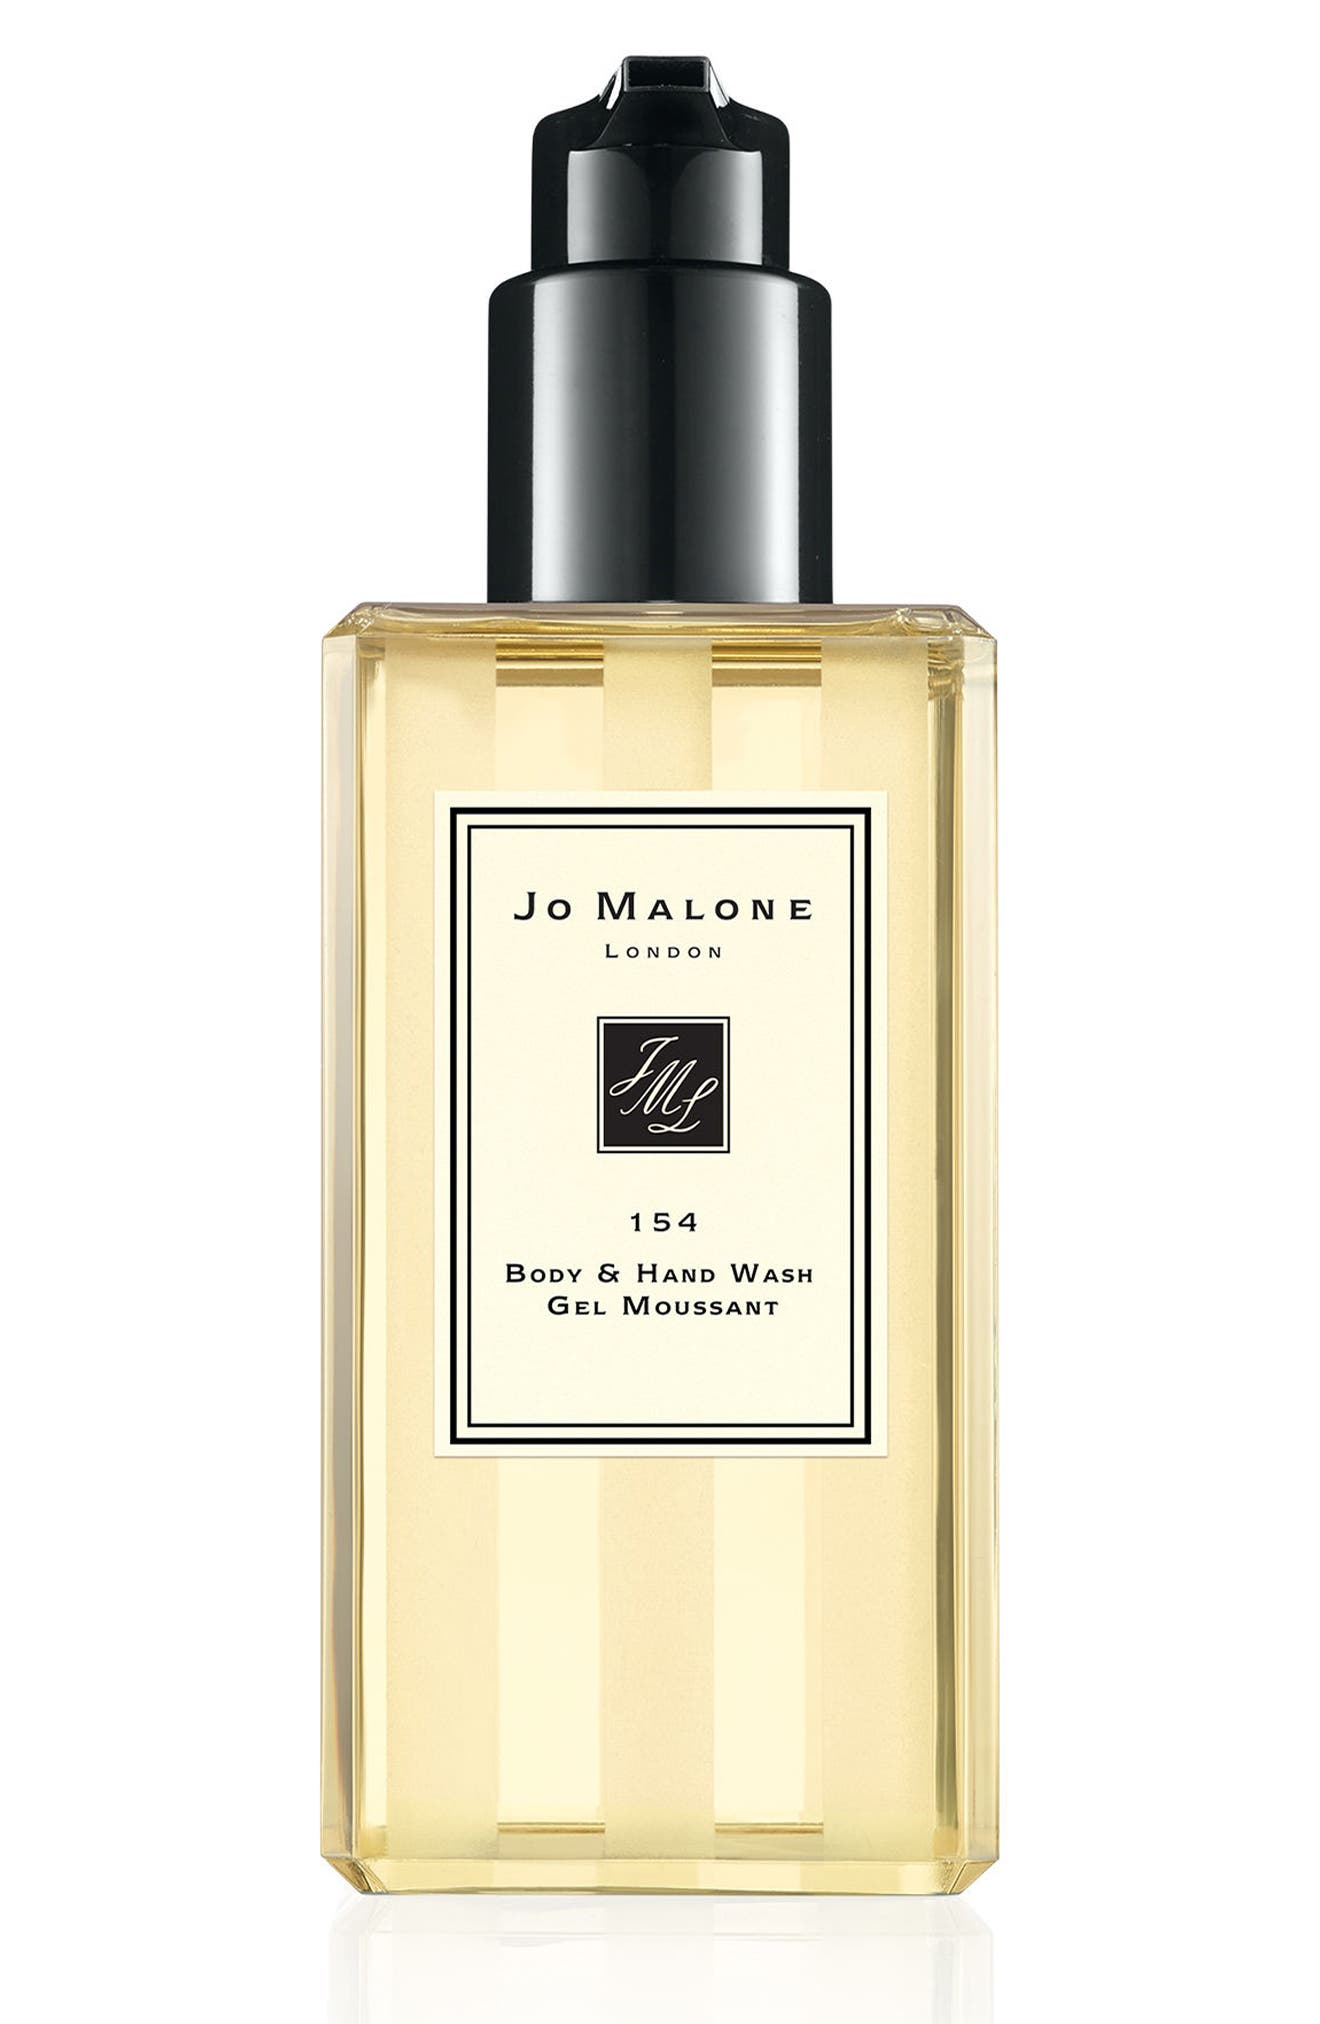 Jo Malone London™ '154' Body & Hand Wash